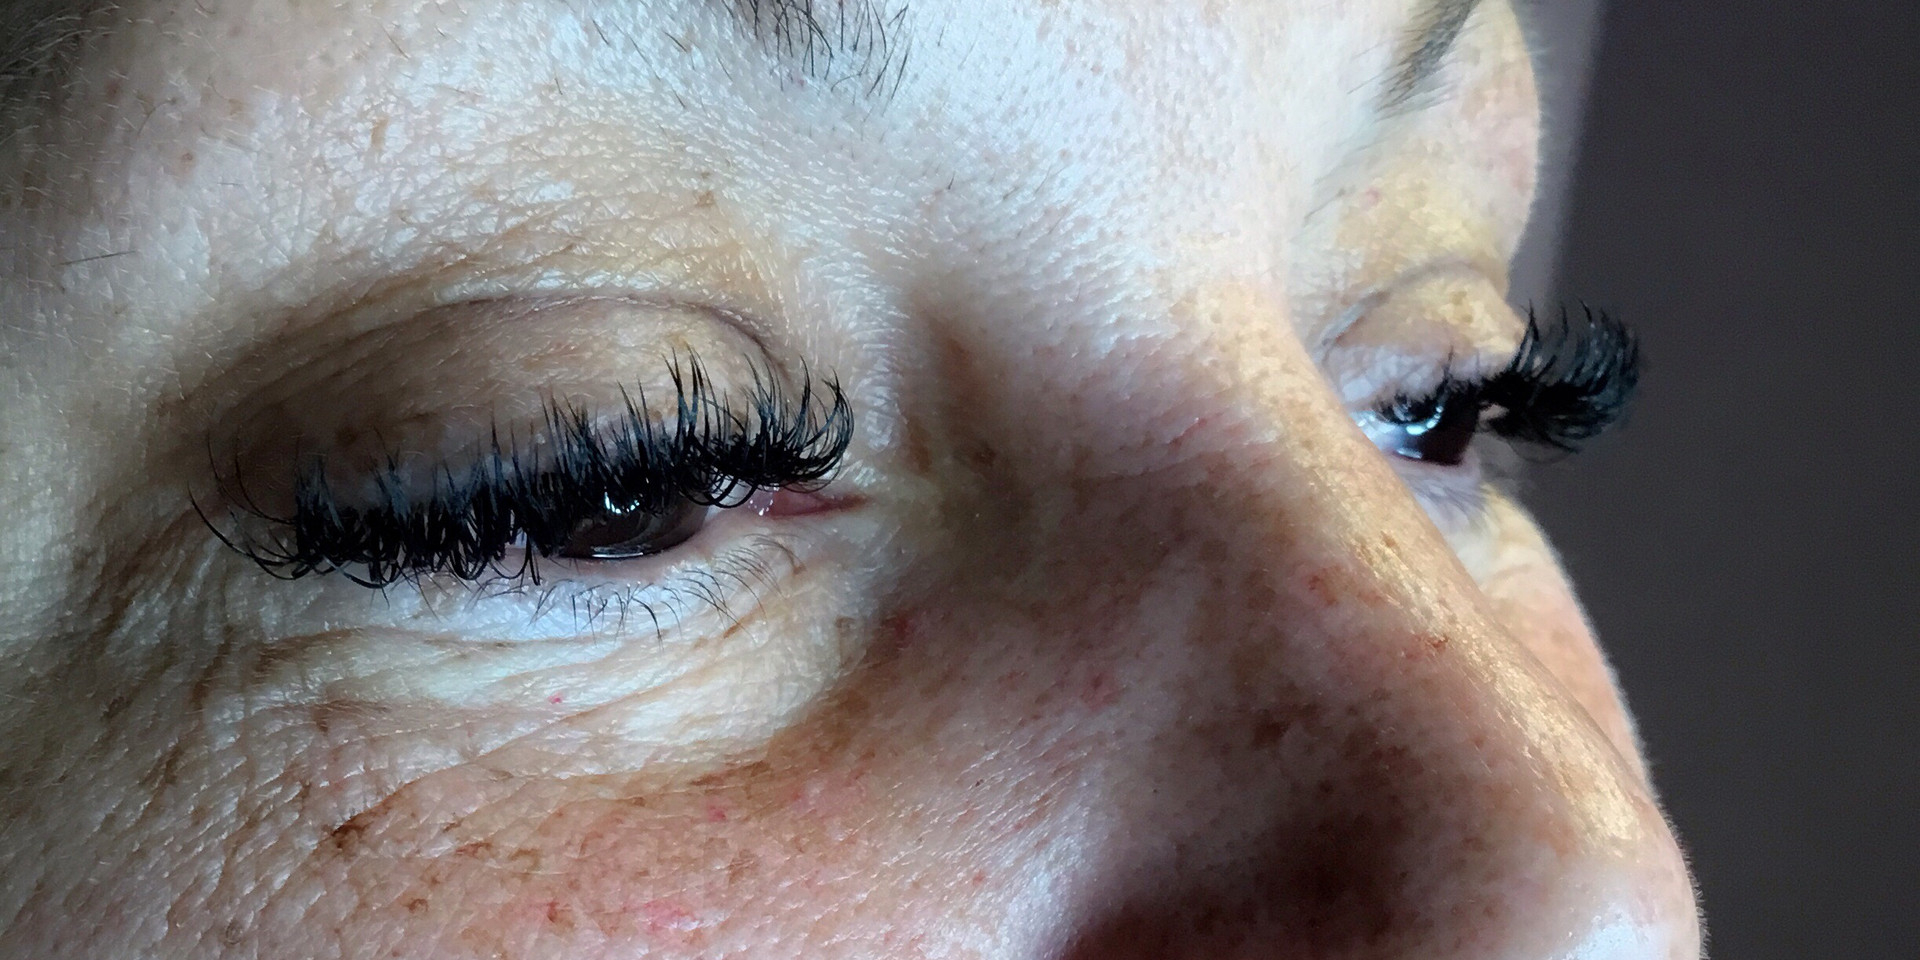 8,9,10MM LASHES